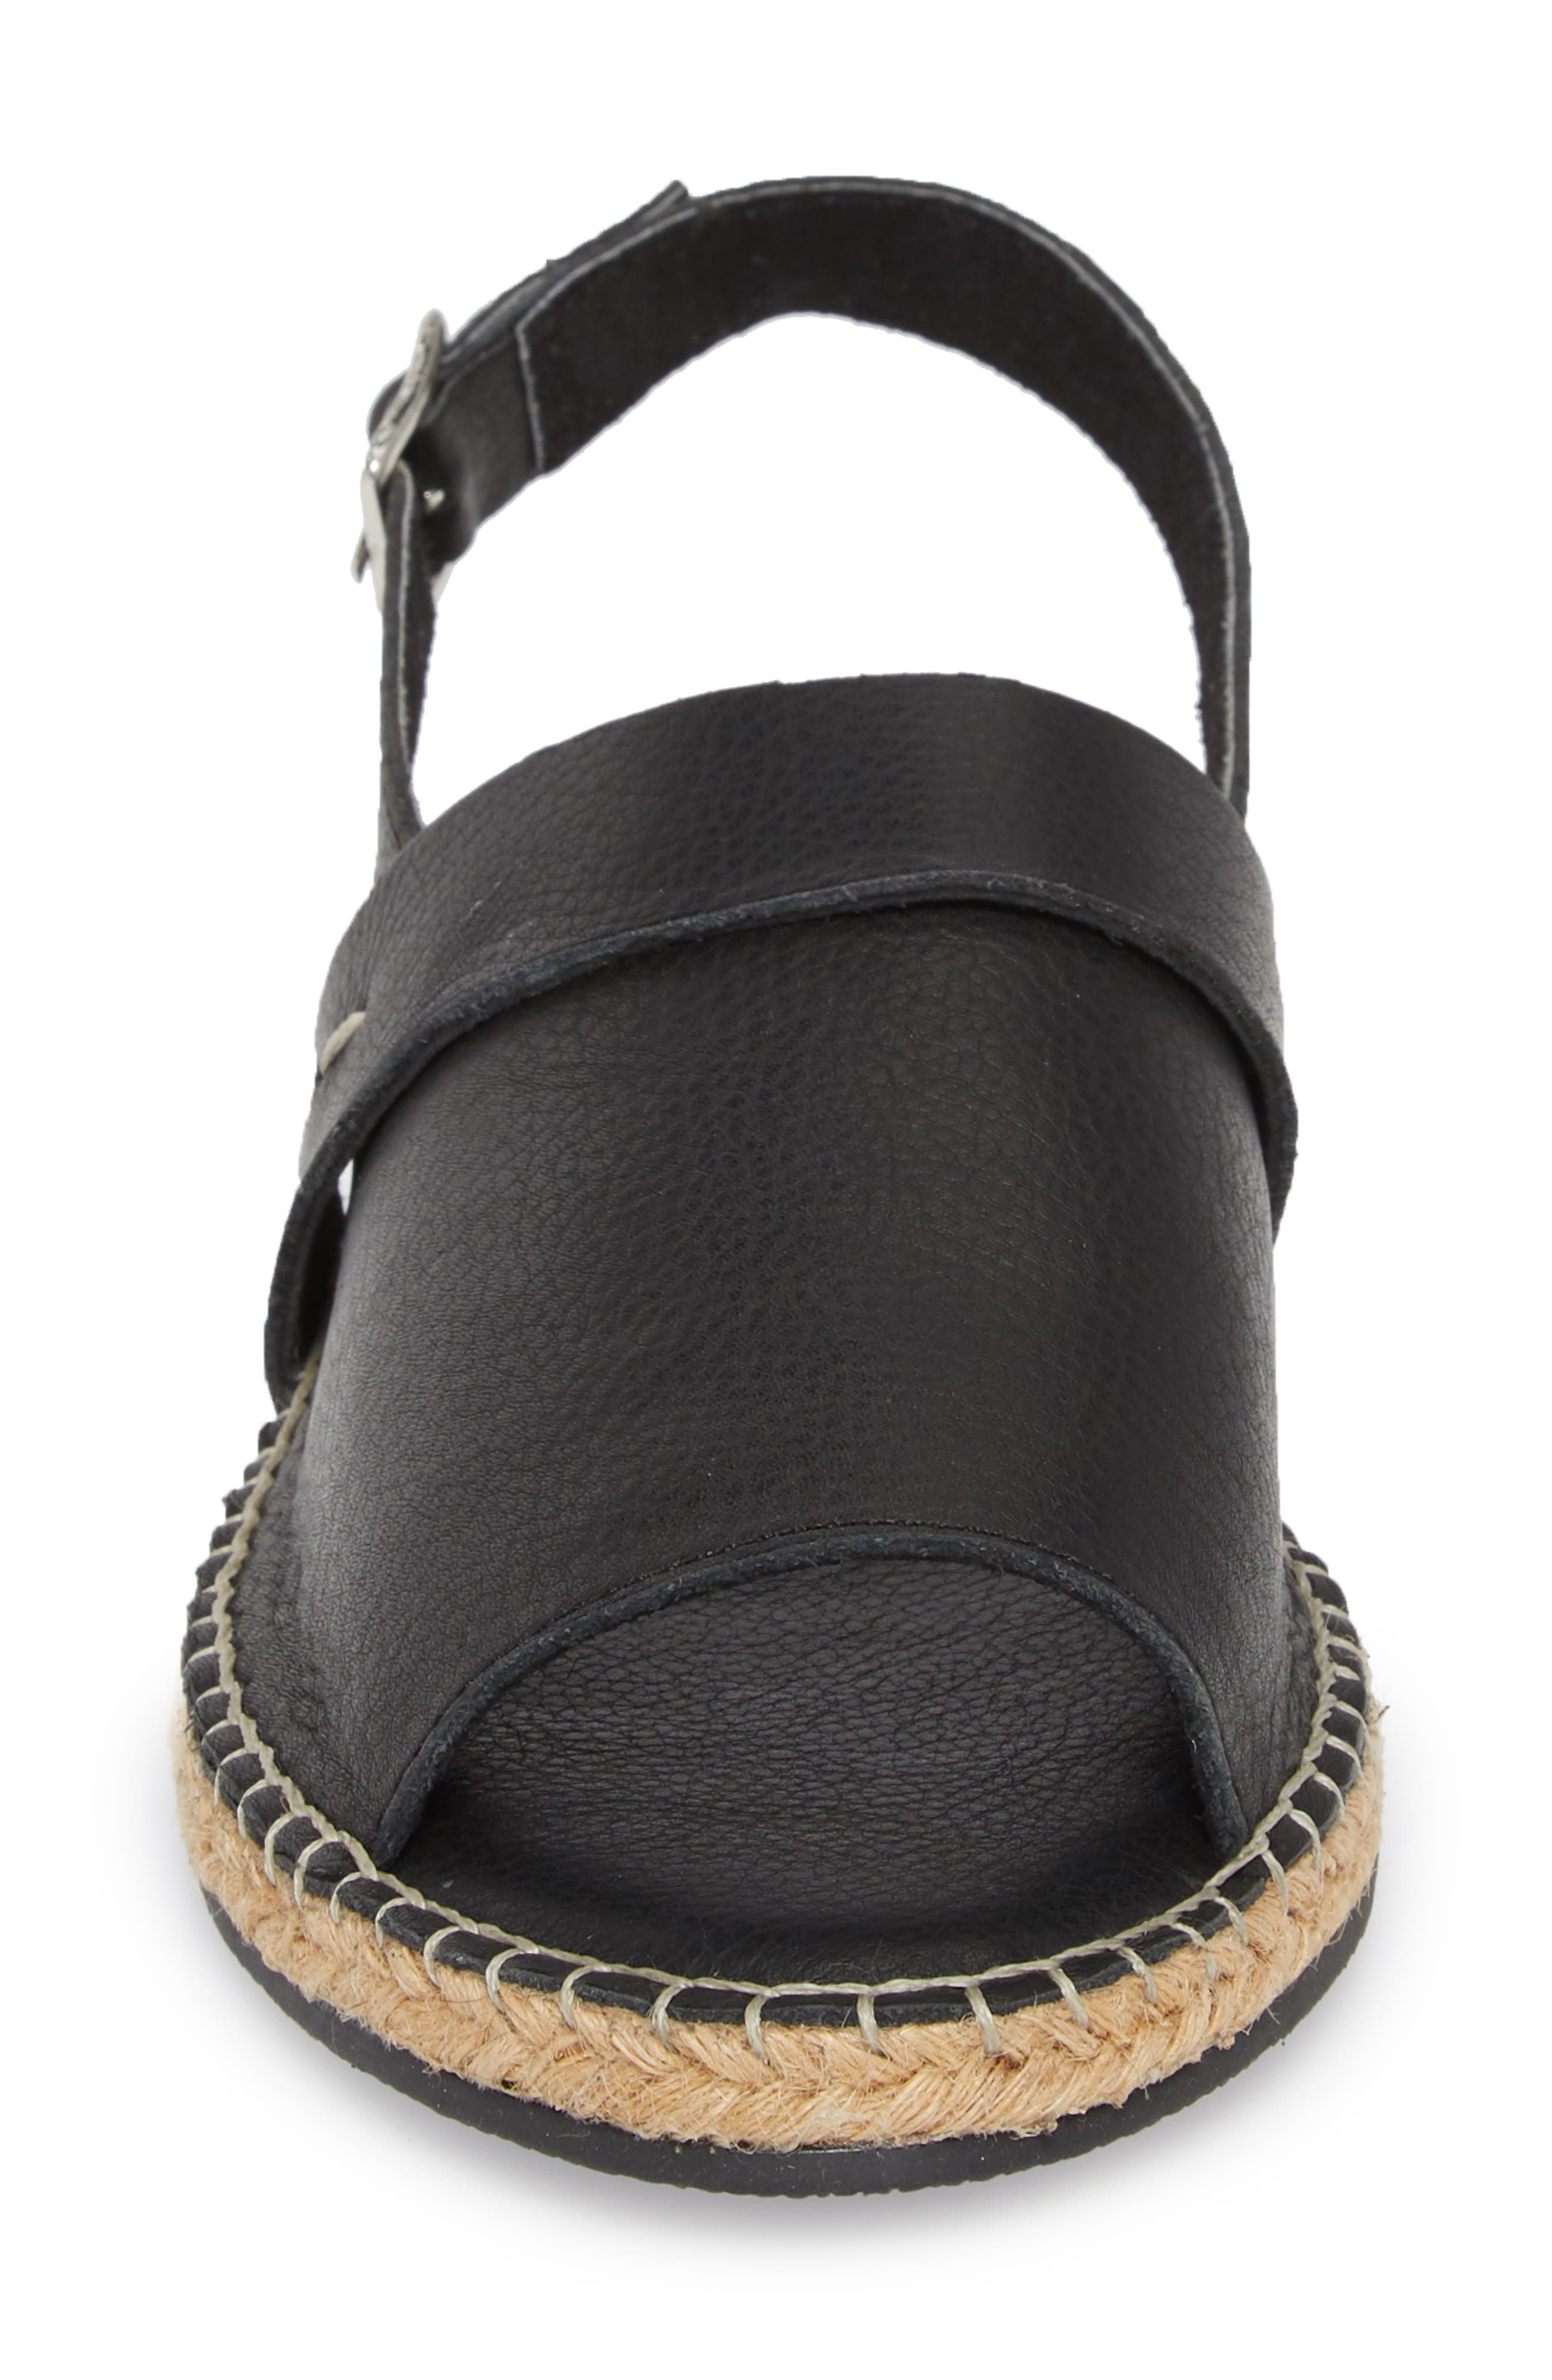 Turn Key Espadrille Sandal,                             Alternate thumbnail 4, color,                             BLACK LEATHER